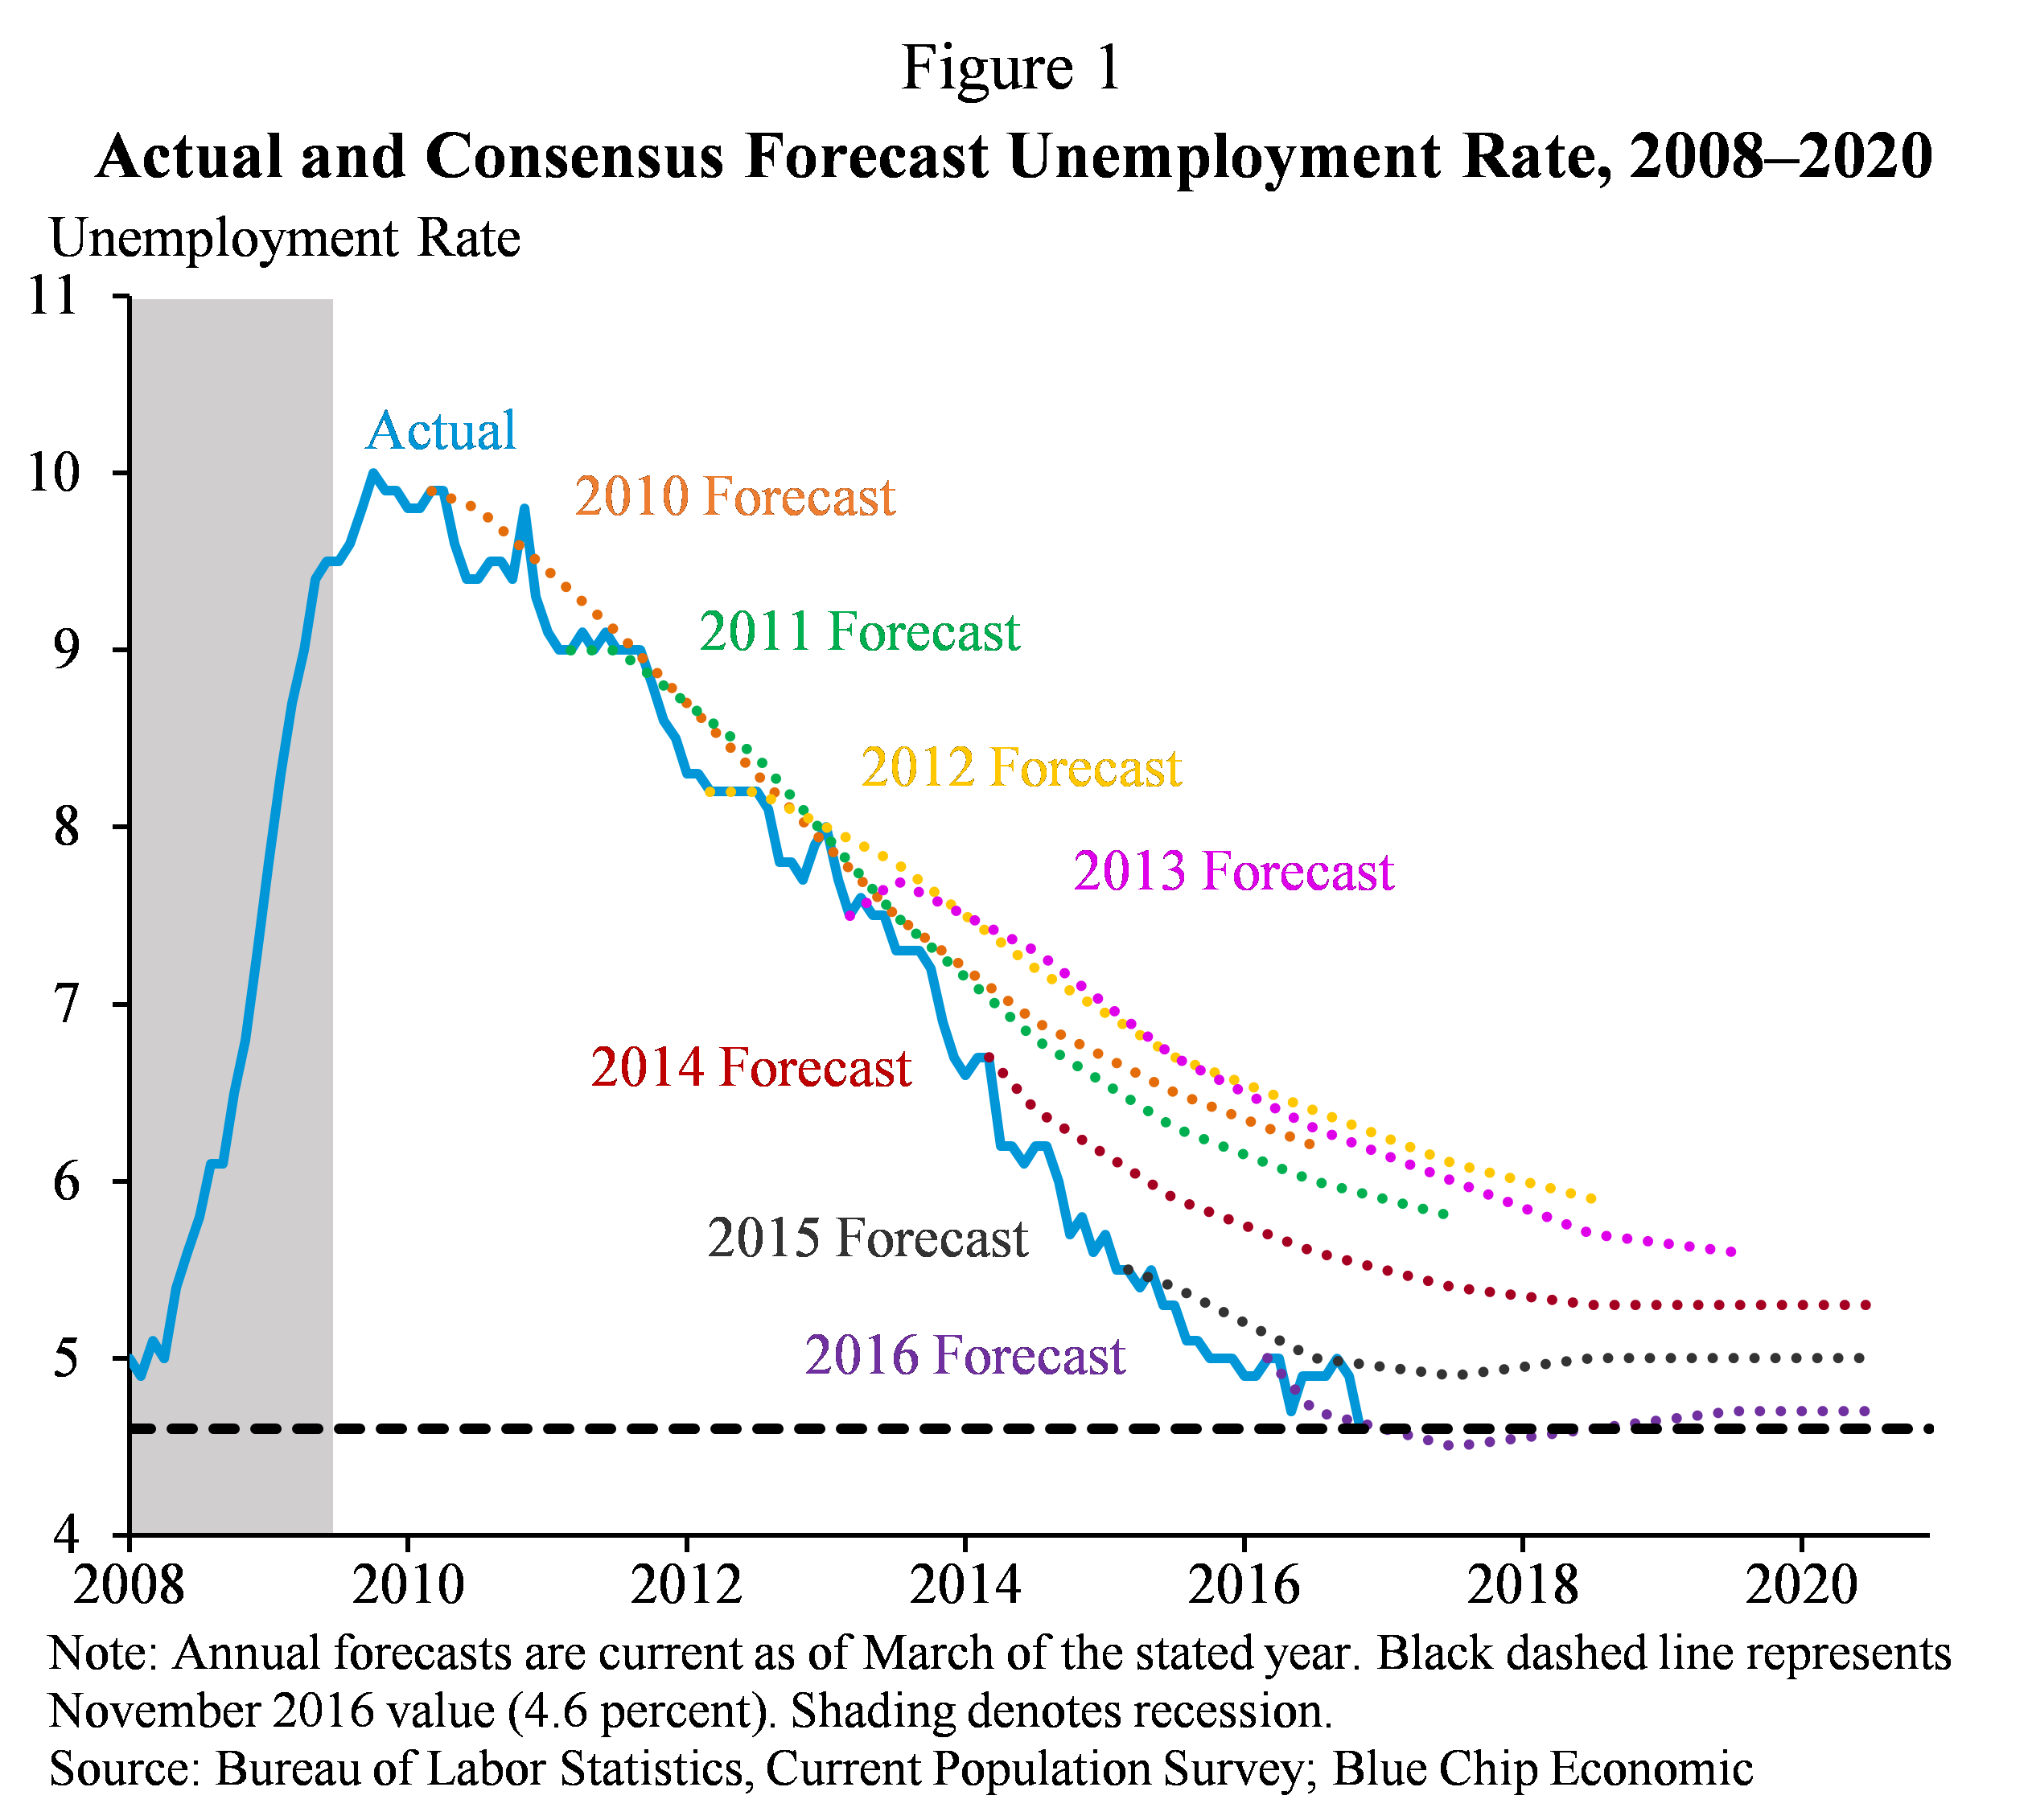 Figure 1.  Actual and Consensus Forecast Unemployment Rate, 2008-2020